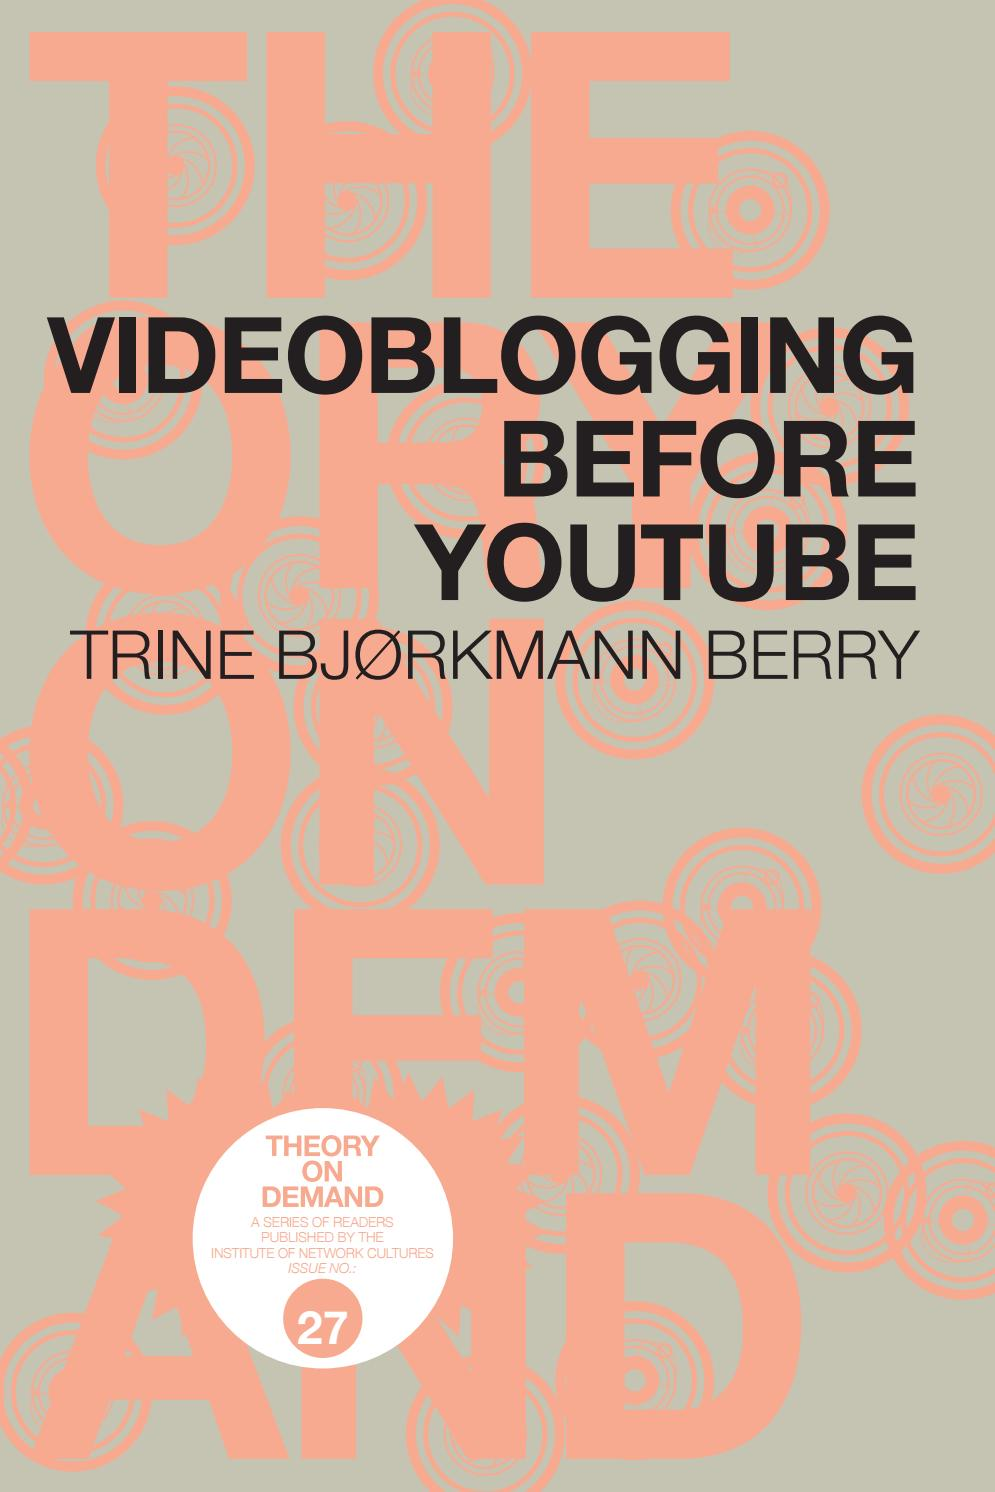 Videoblogging Before YouTube by Institute of Network Cultures - issuu